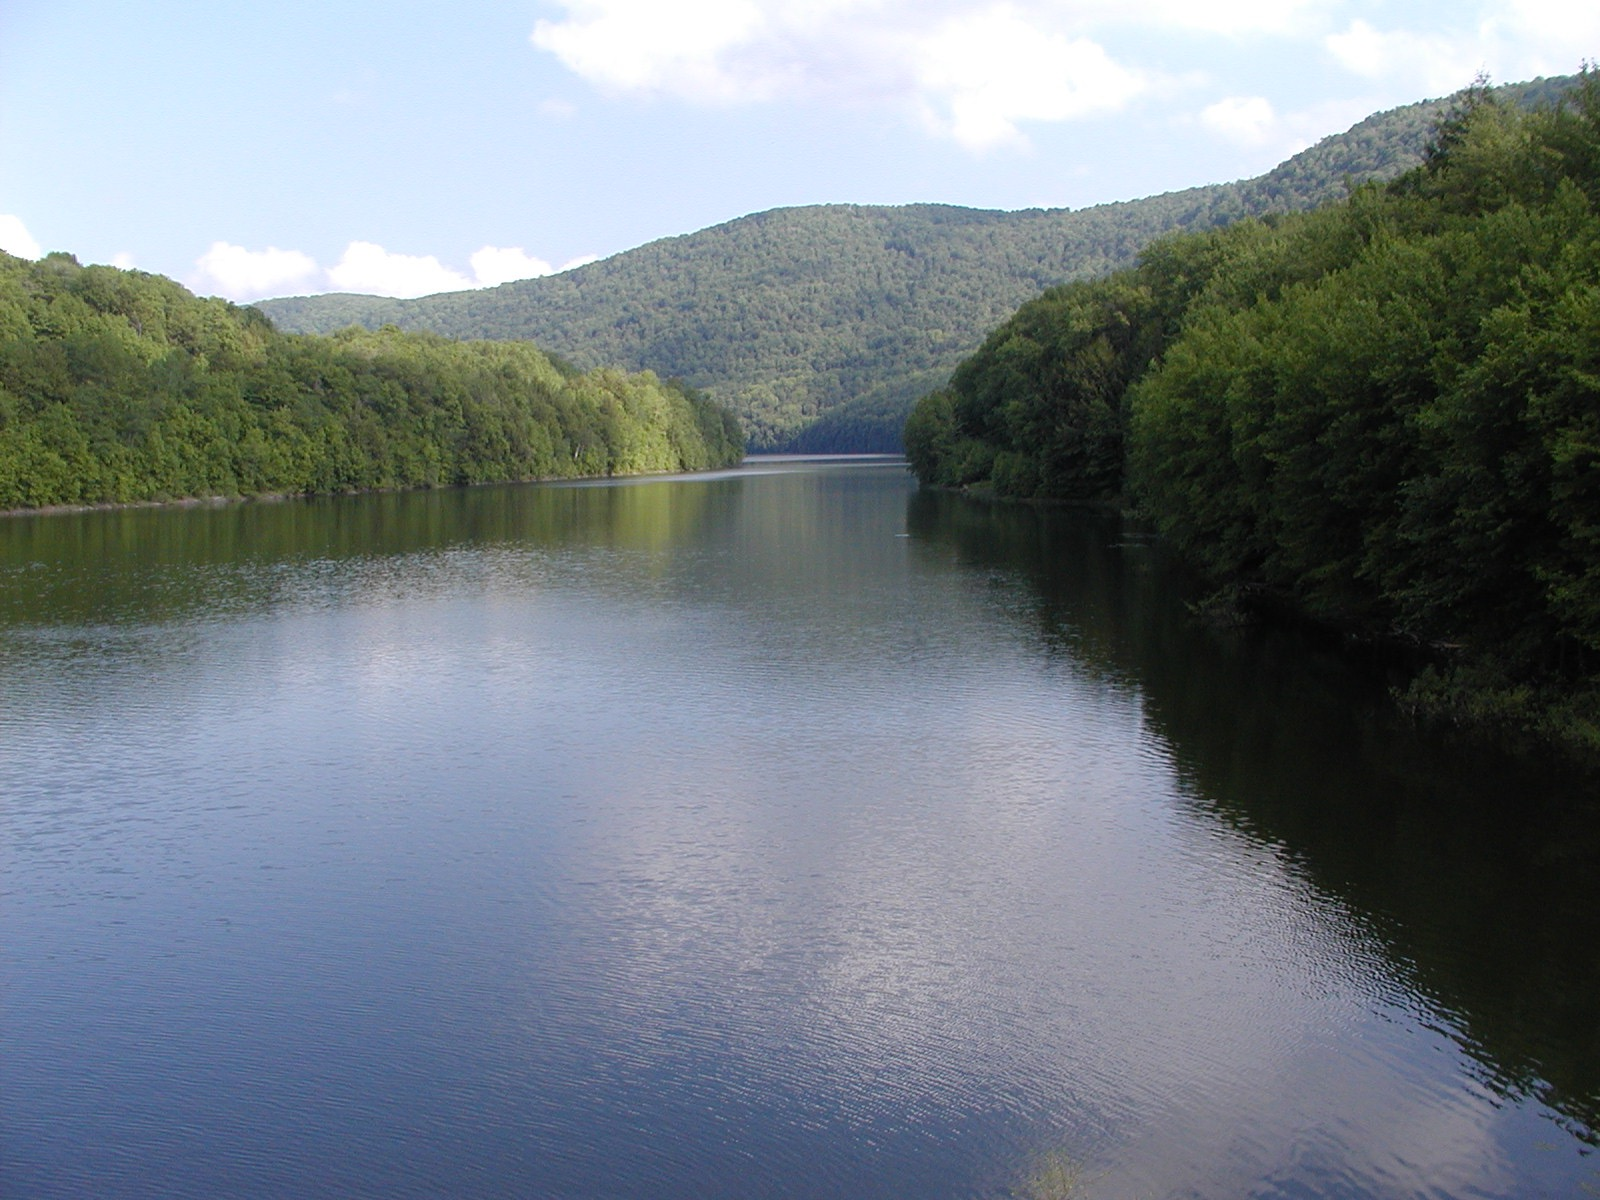 Canonsville Dam, Source of New York City water